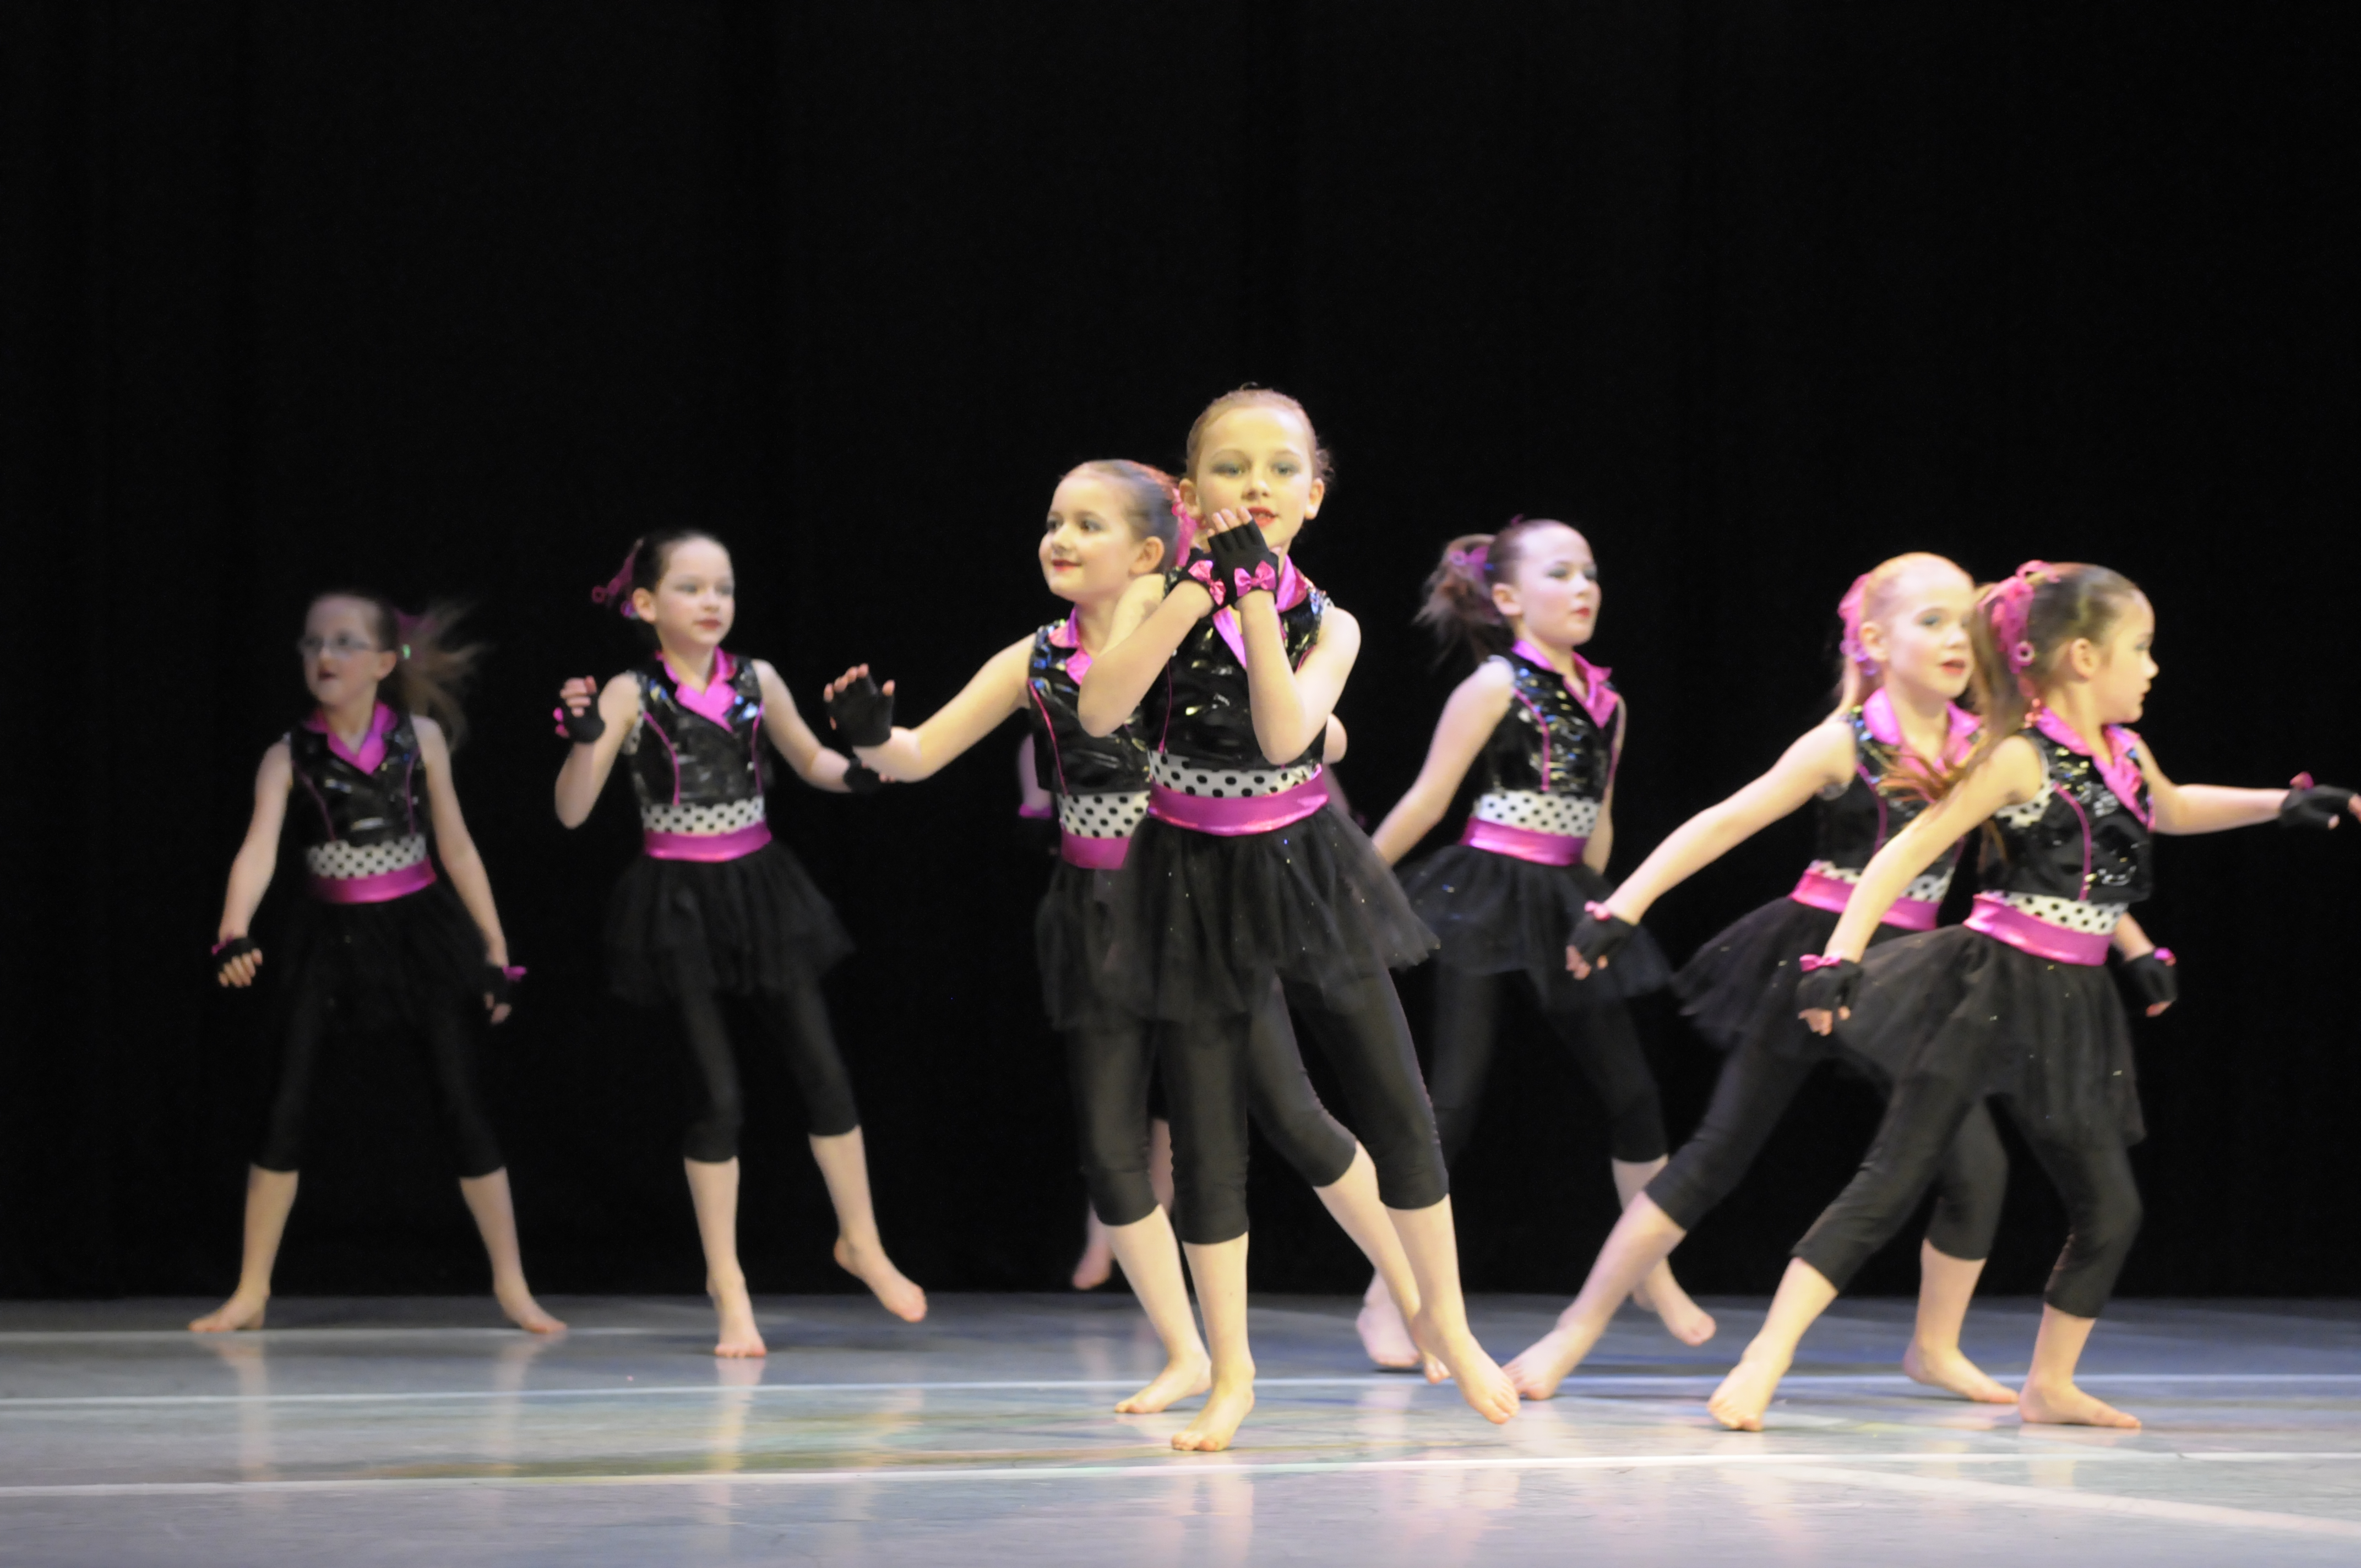 Learn ballet at home beginners